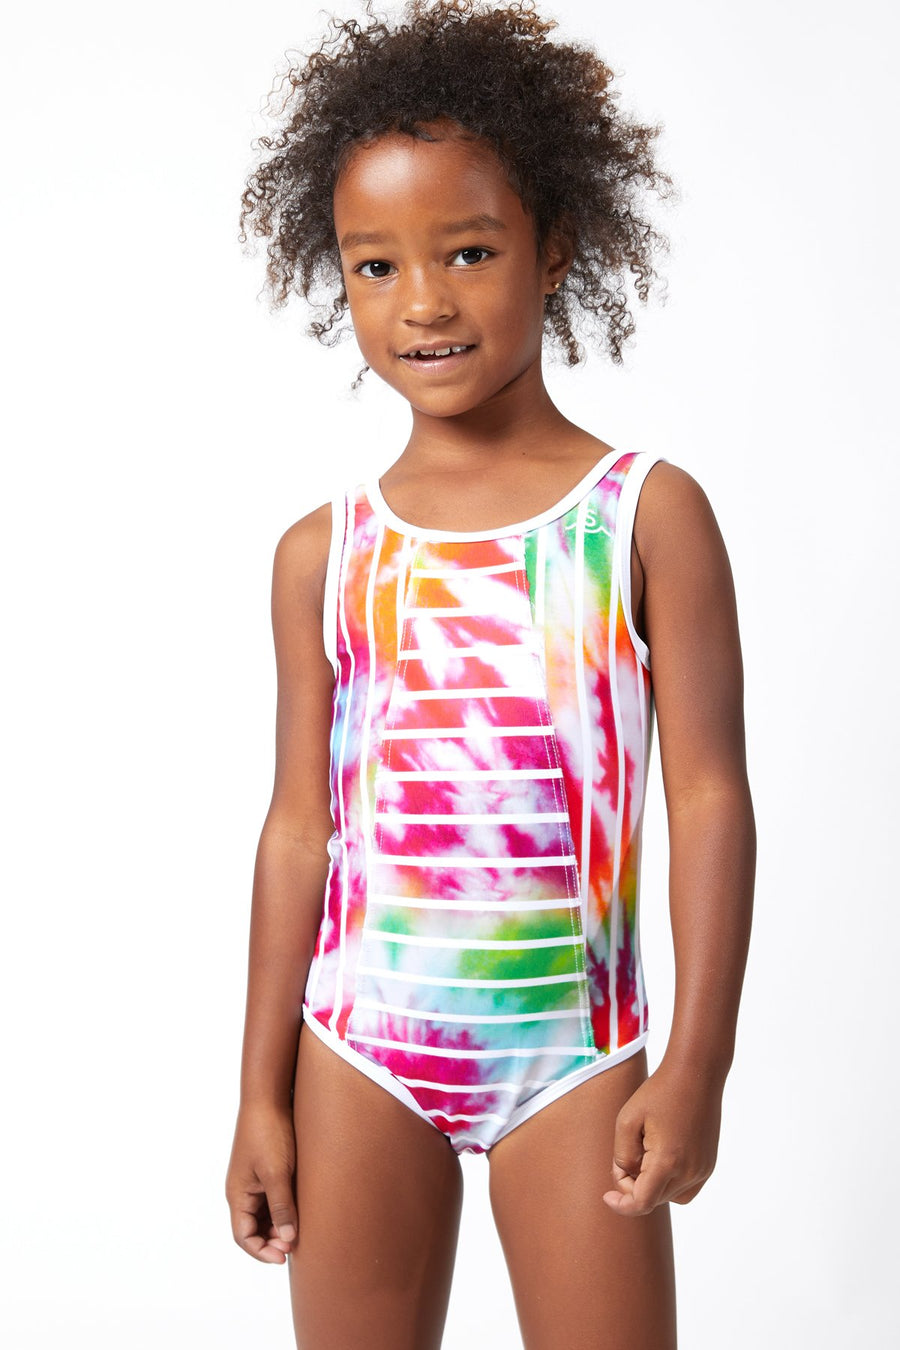 Sea Ripple / Tie Dye Stripe Swimsuit